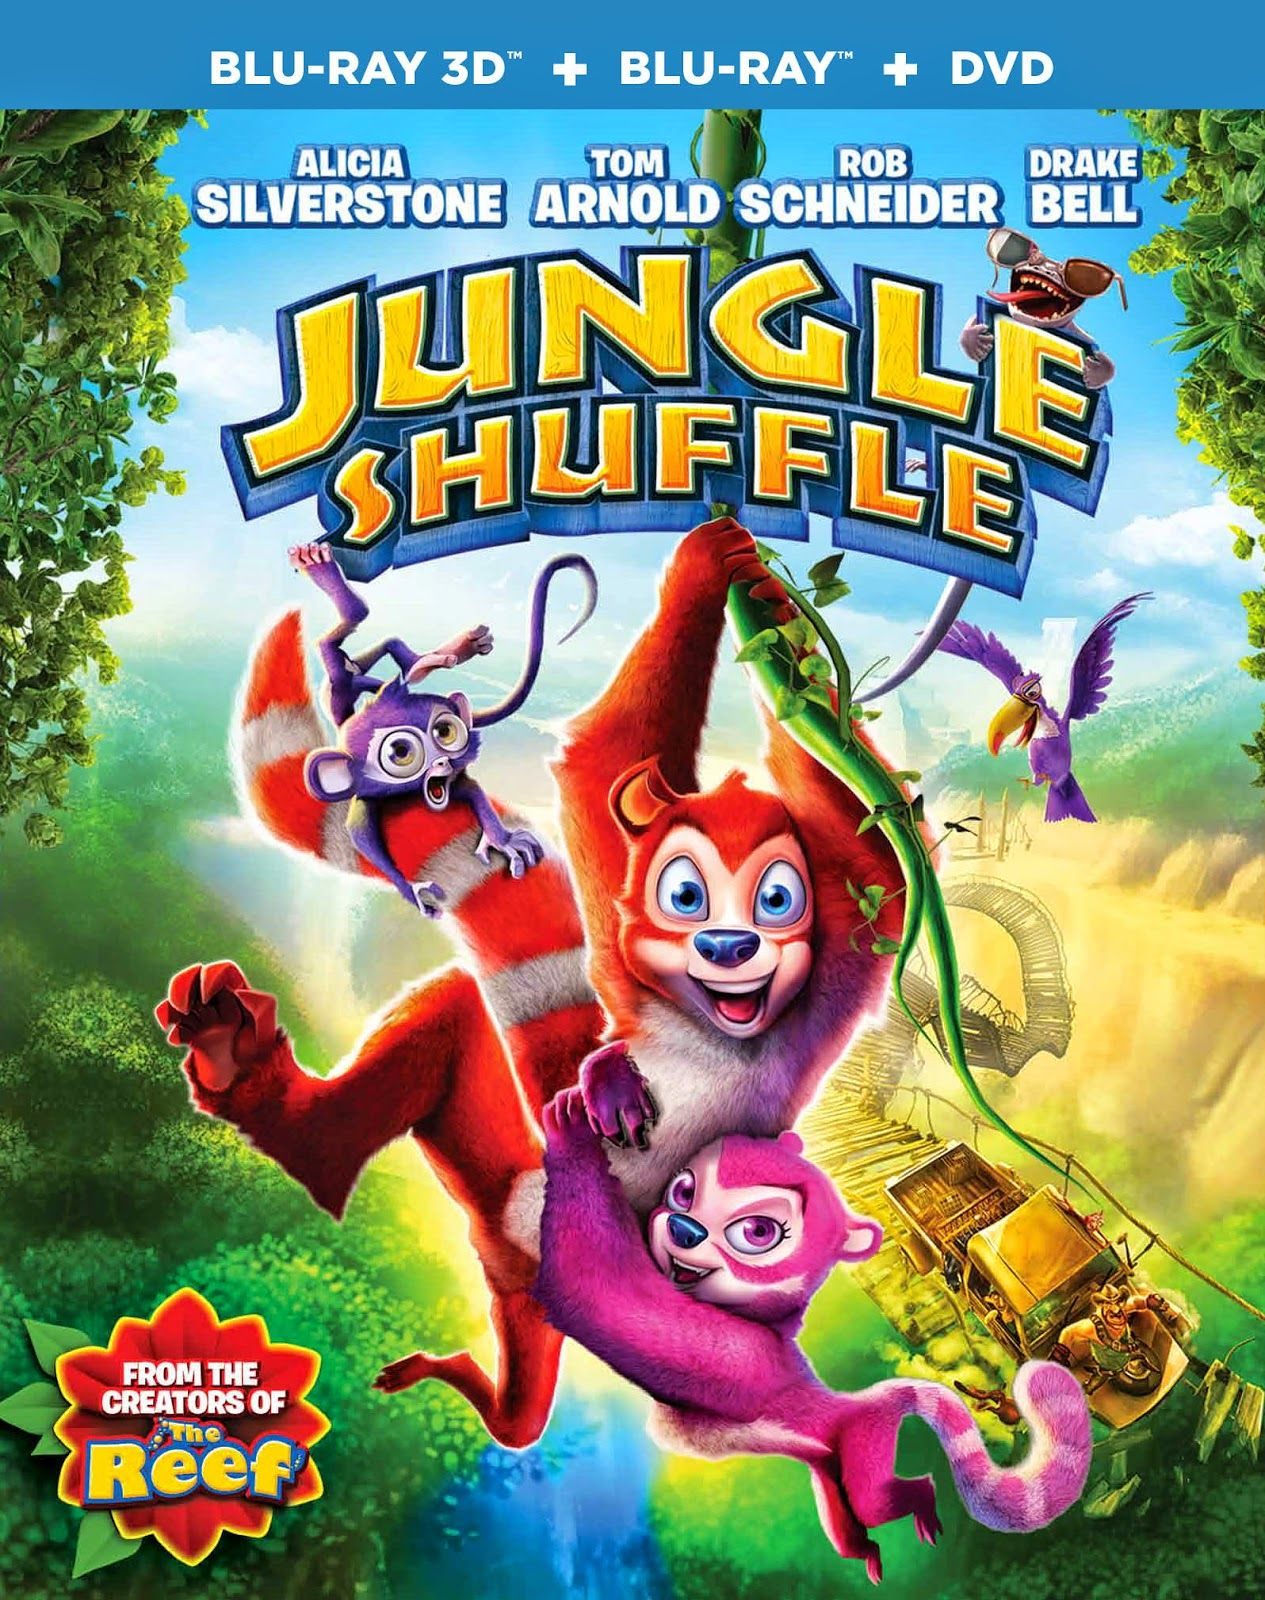 Jungle Shuffle BluRay Combo Pack Review + Giveaway